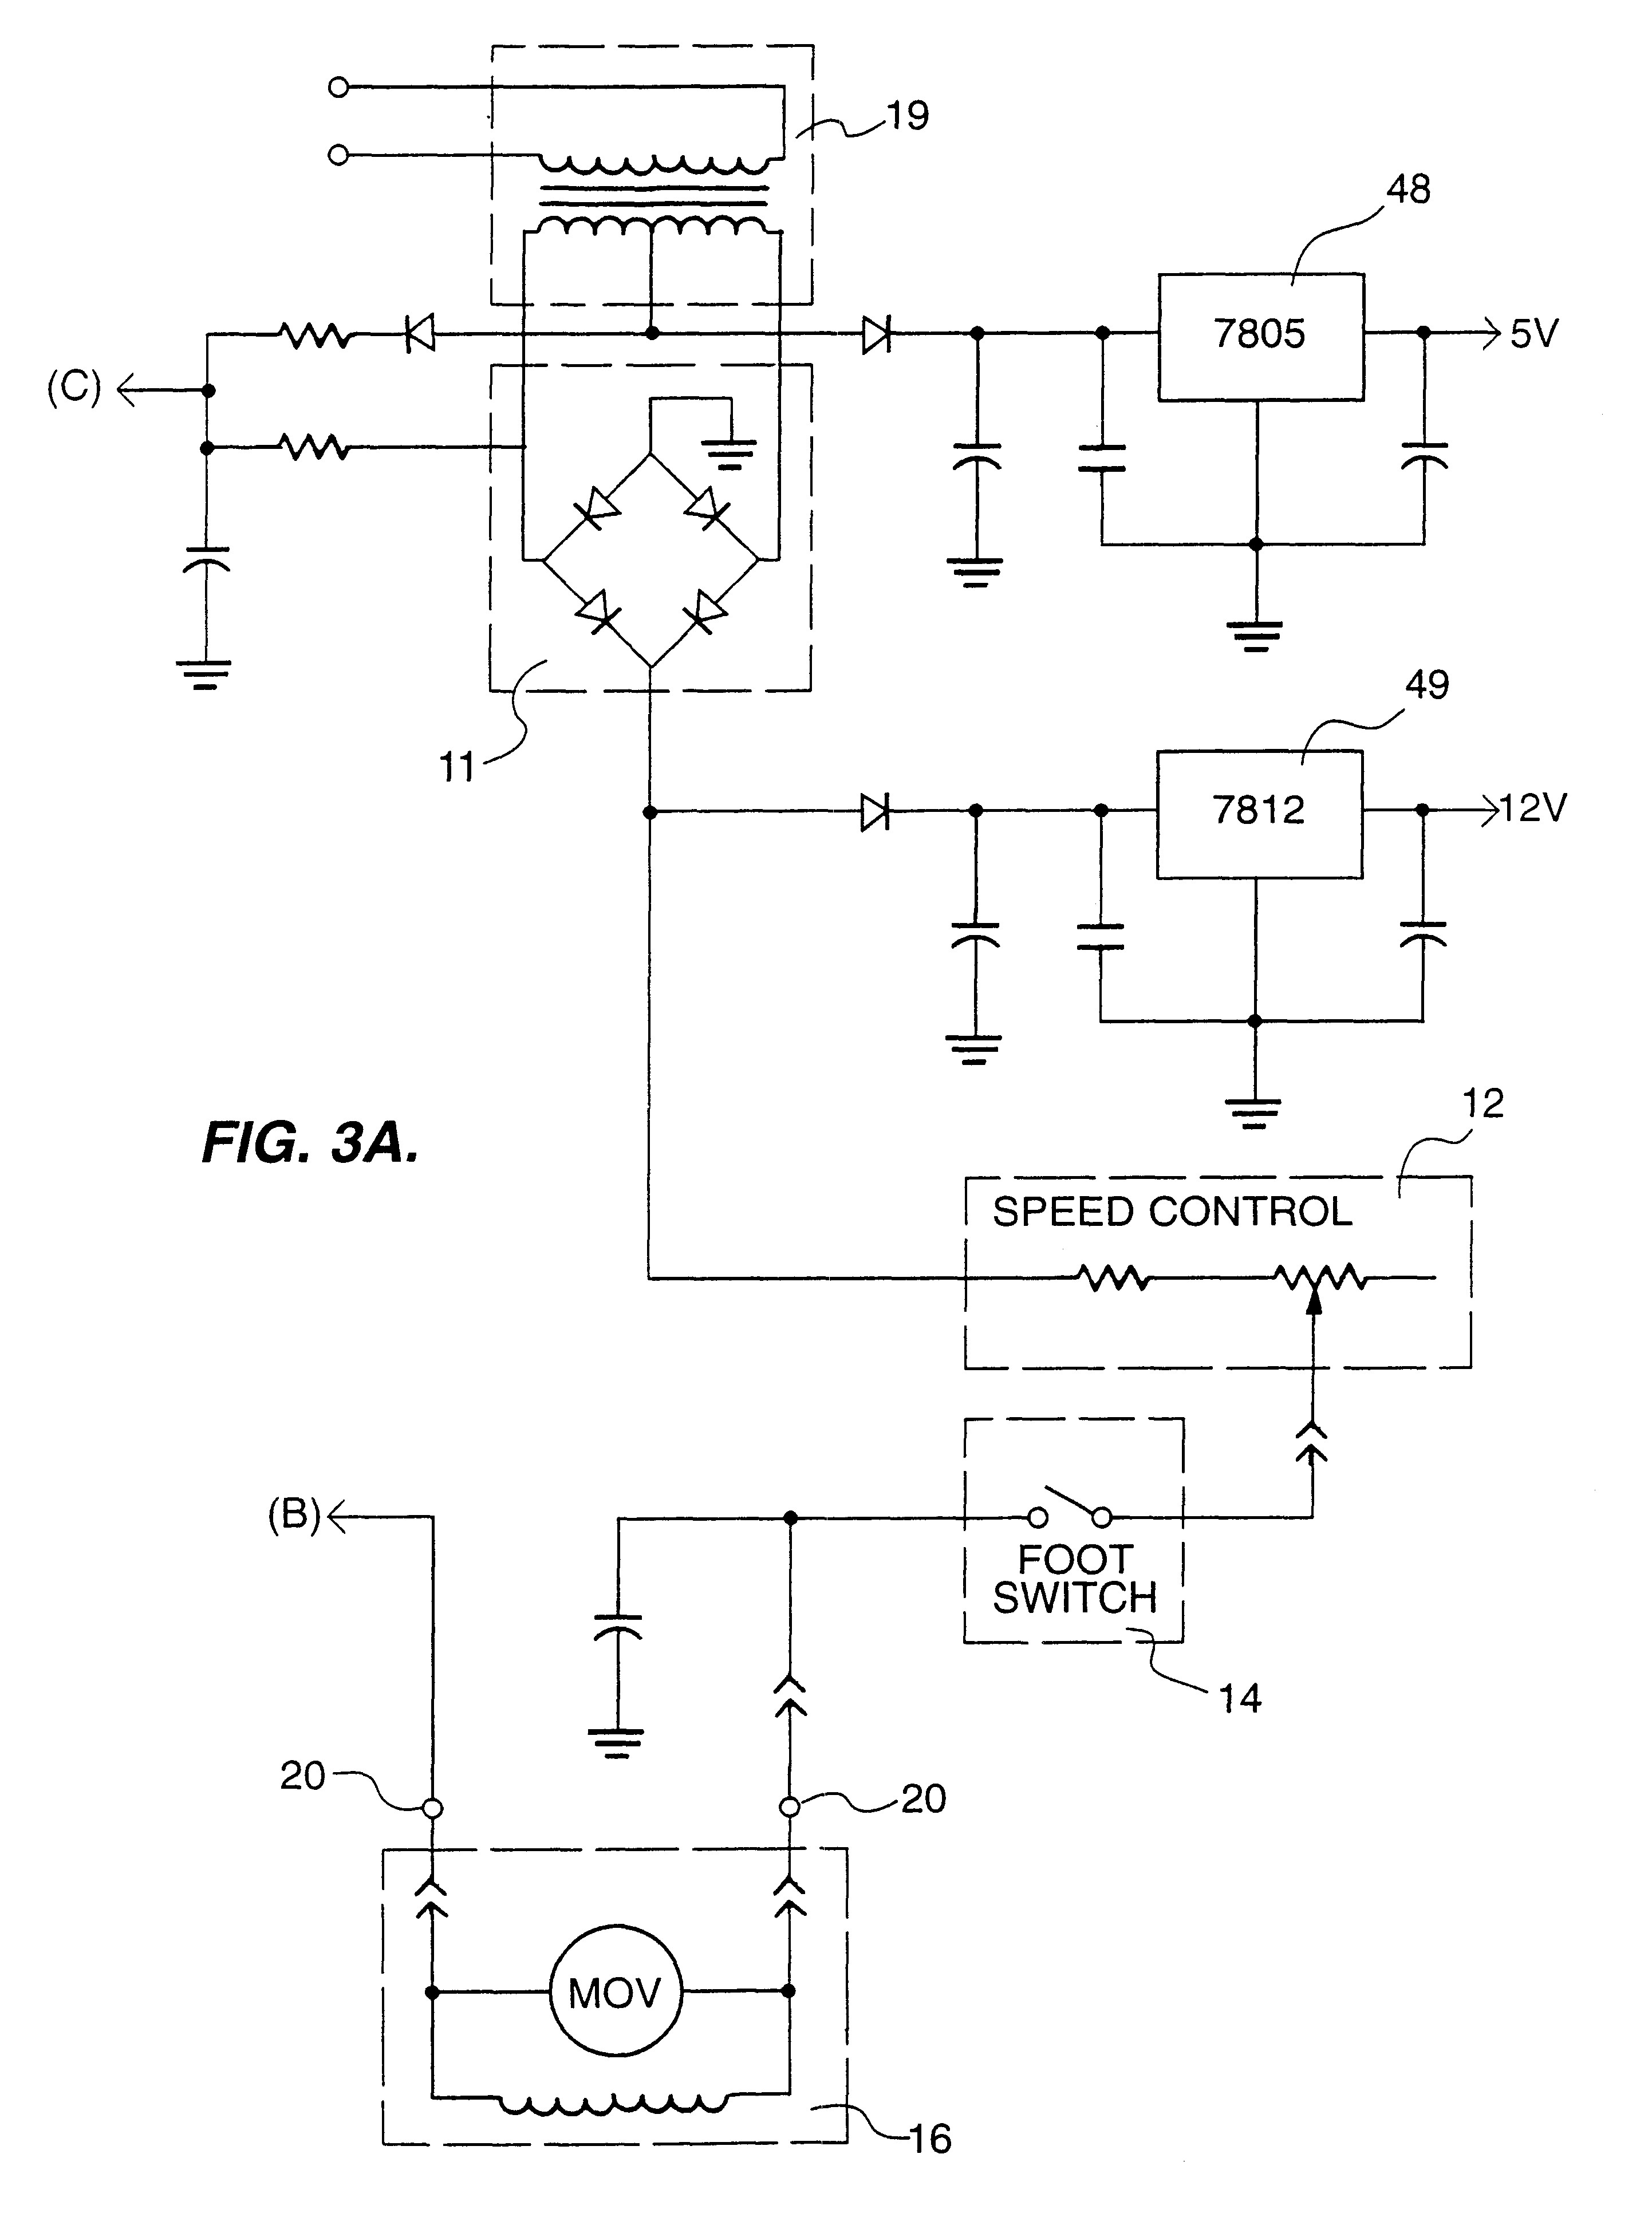 tattoo power supply wiring diagram Download-Tattoo Power Supply Wiring Diagram Tattoo Power Supply Wiring Diagram Image 19-h